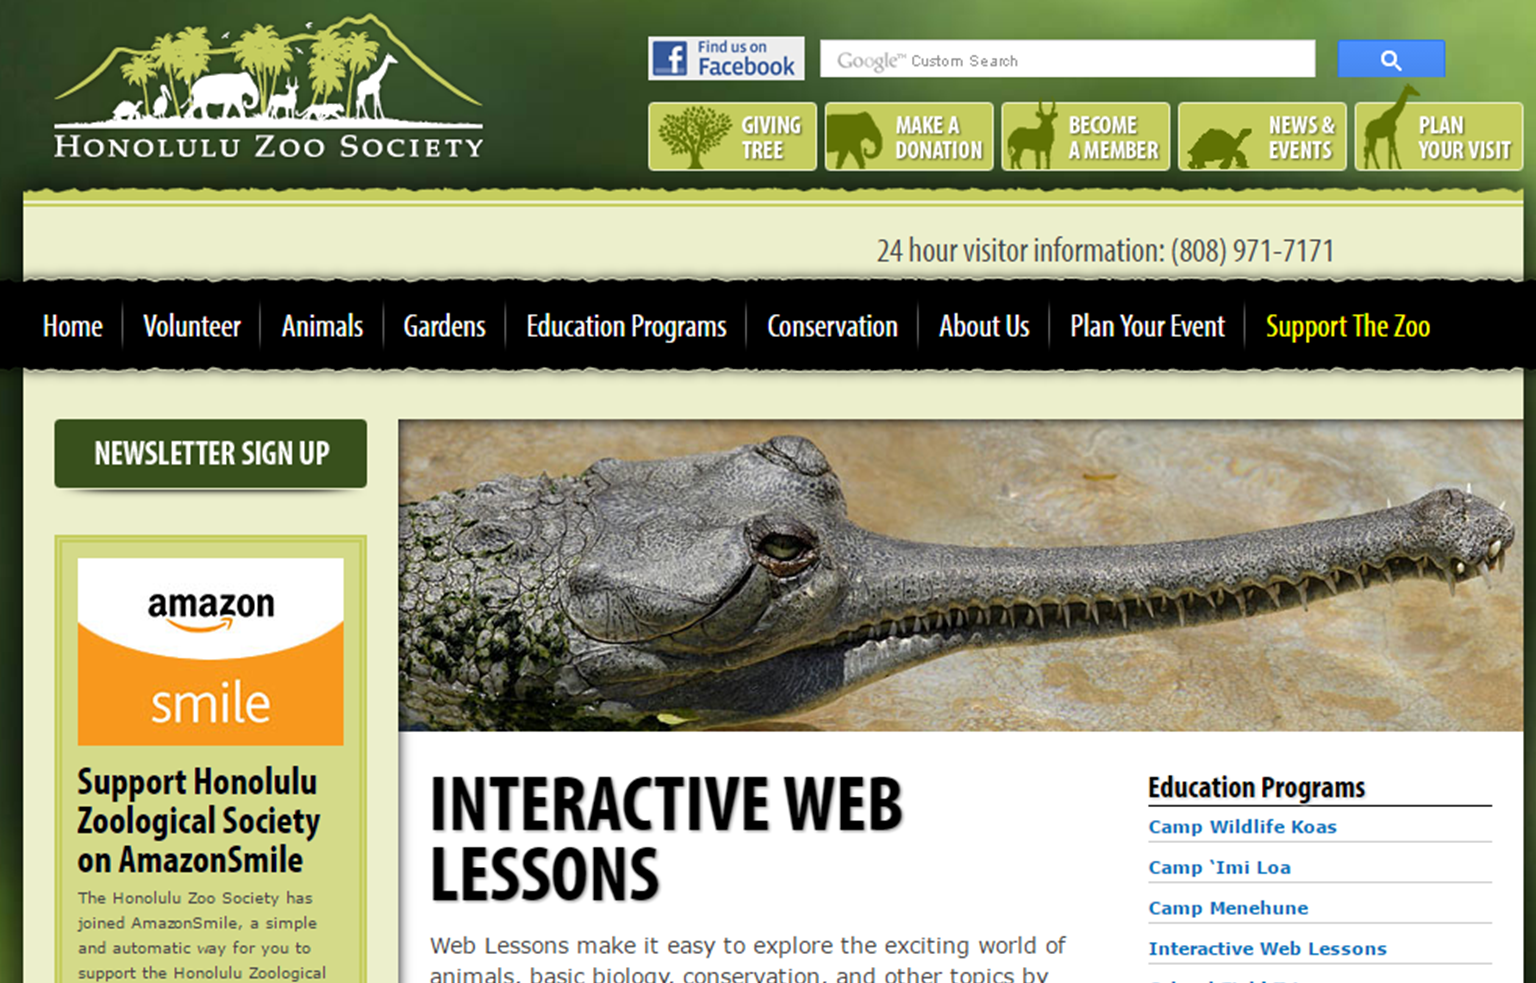 Zoo Web Lessons